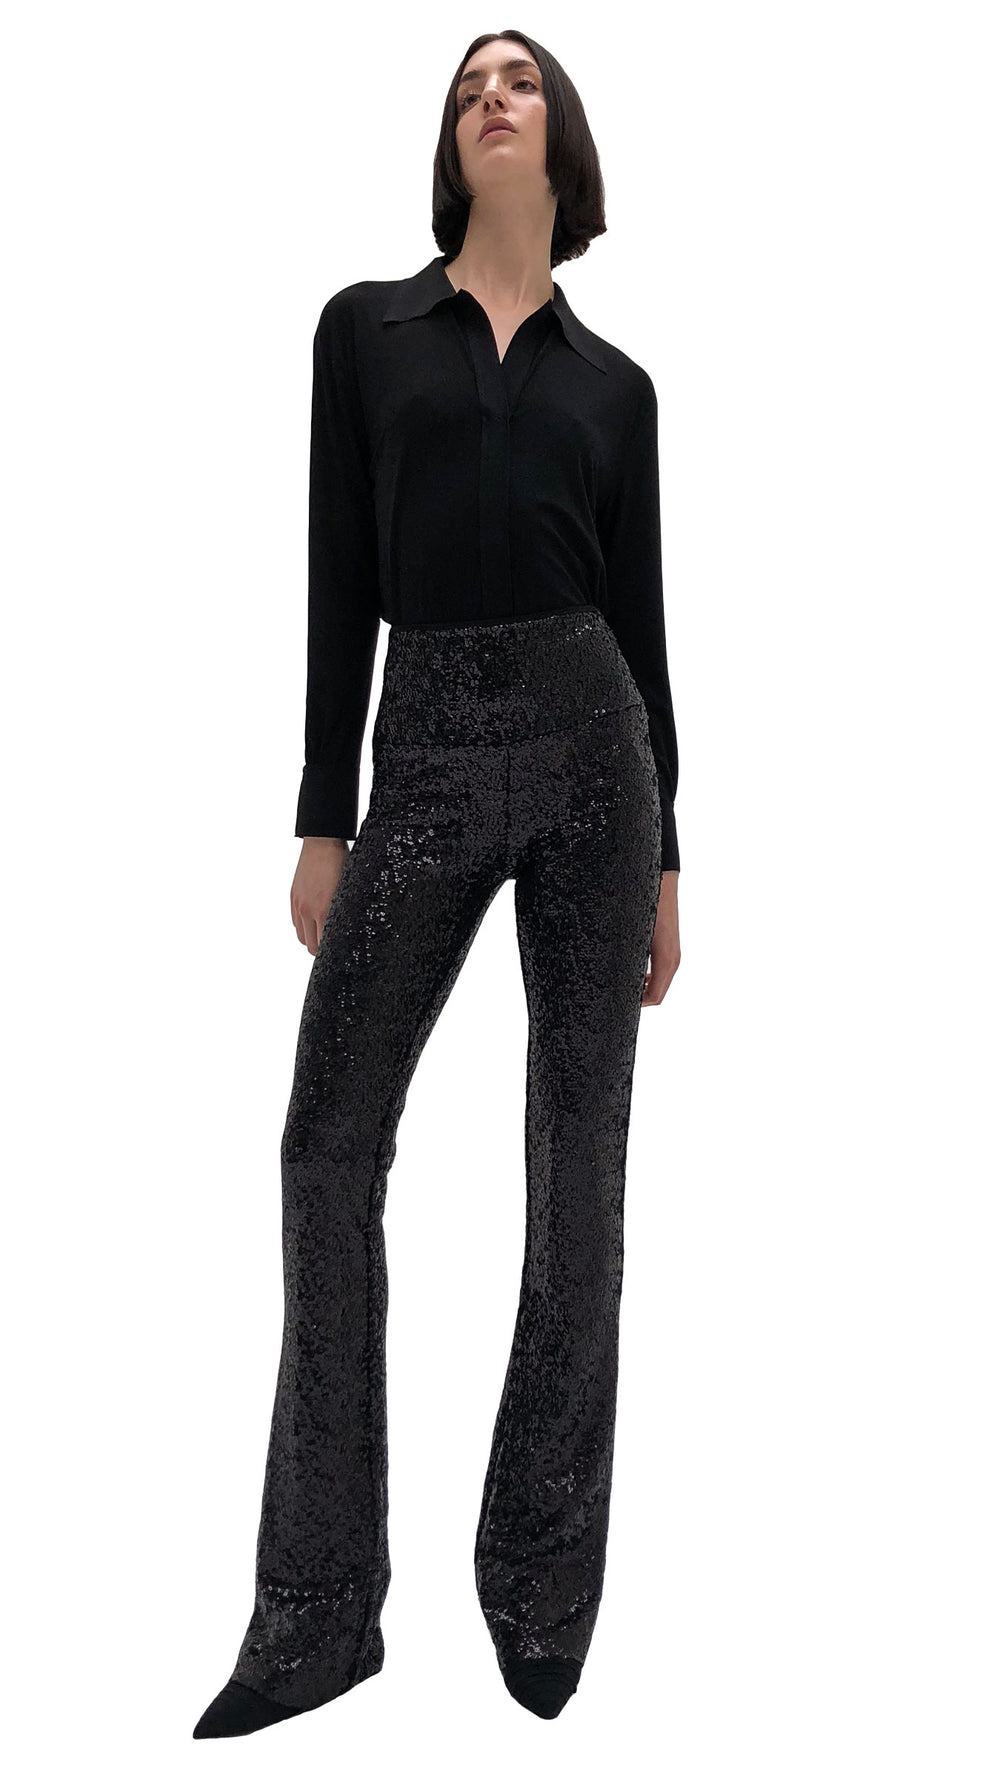 OVERLAPPING SEQUIN BOOT PANT - 1